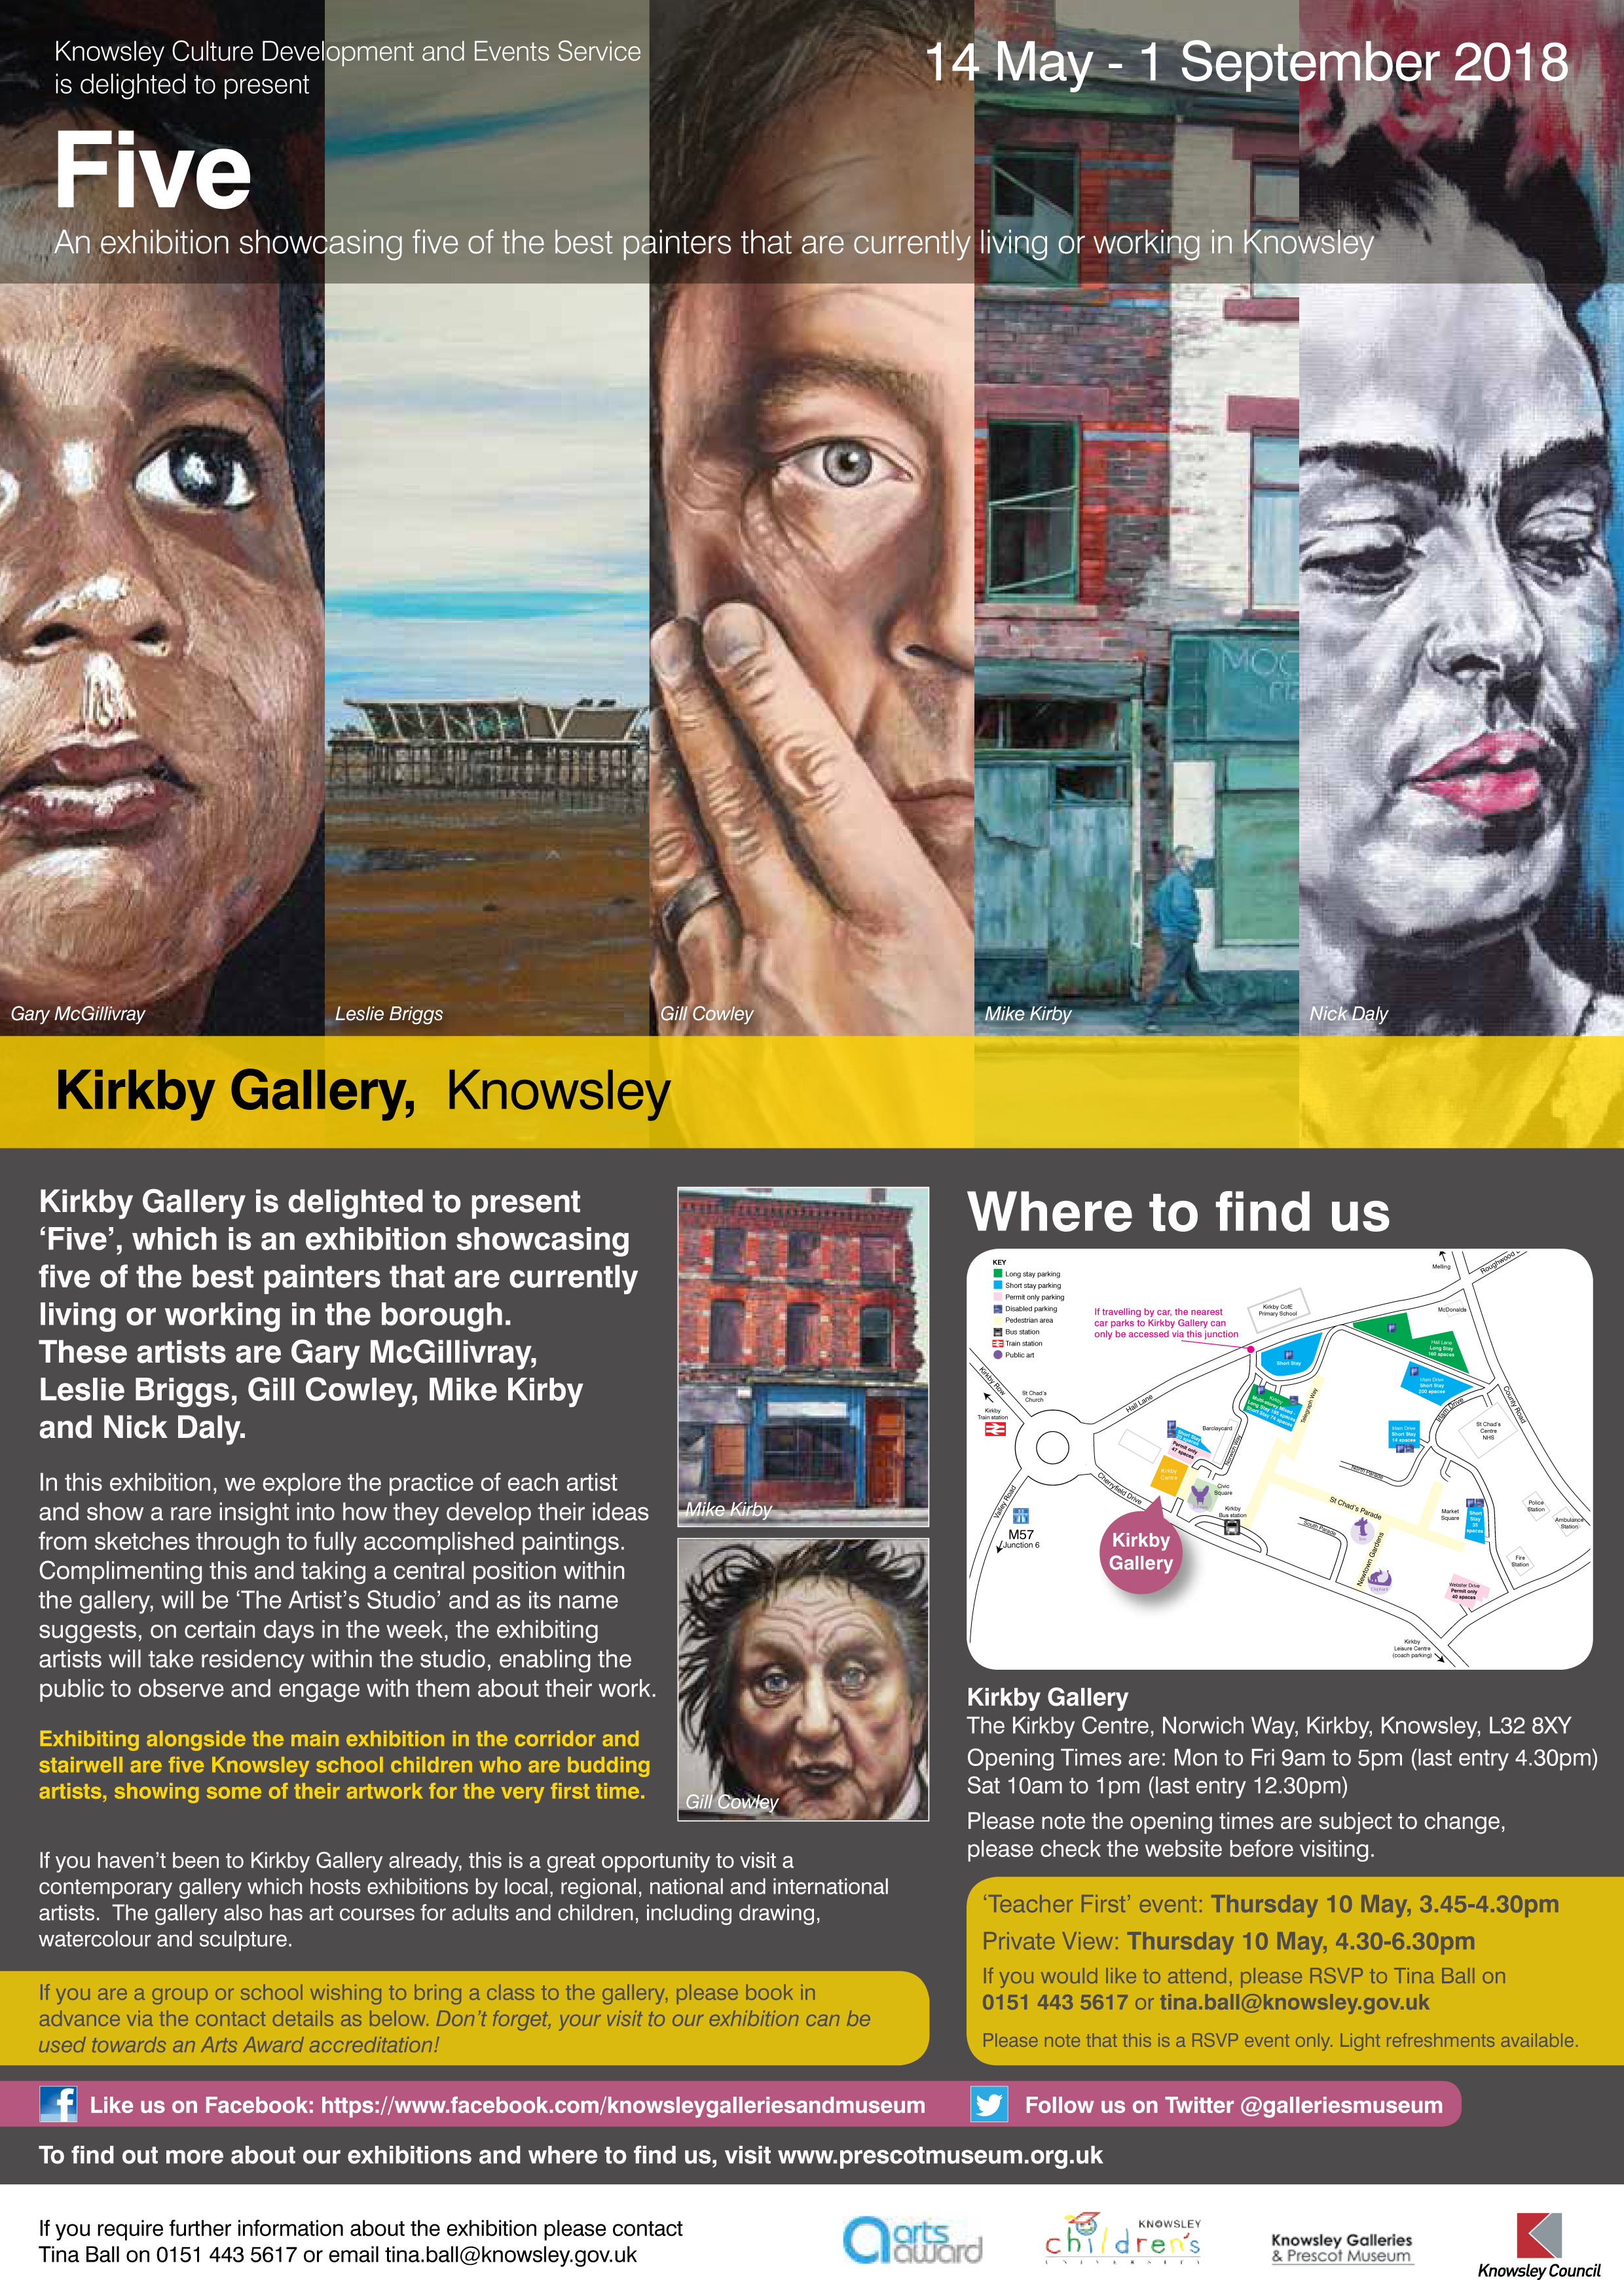 Kirkby Gallery: Five